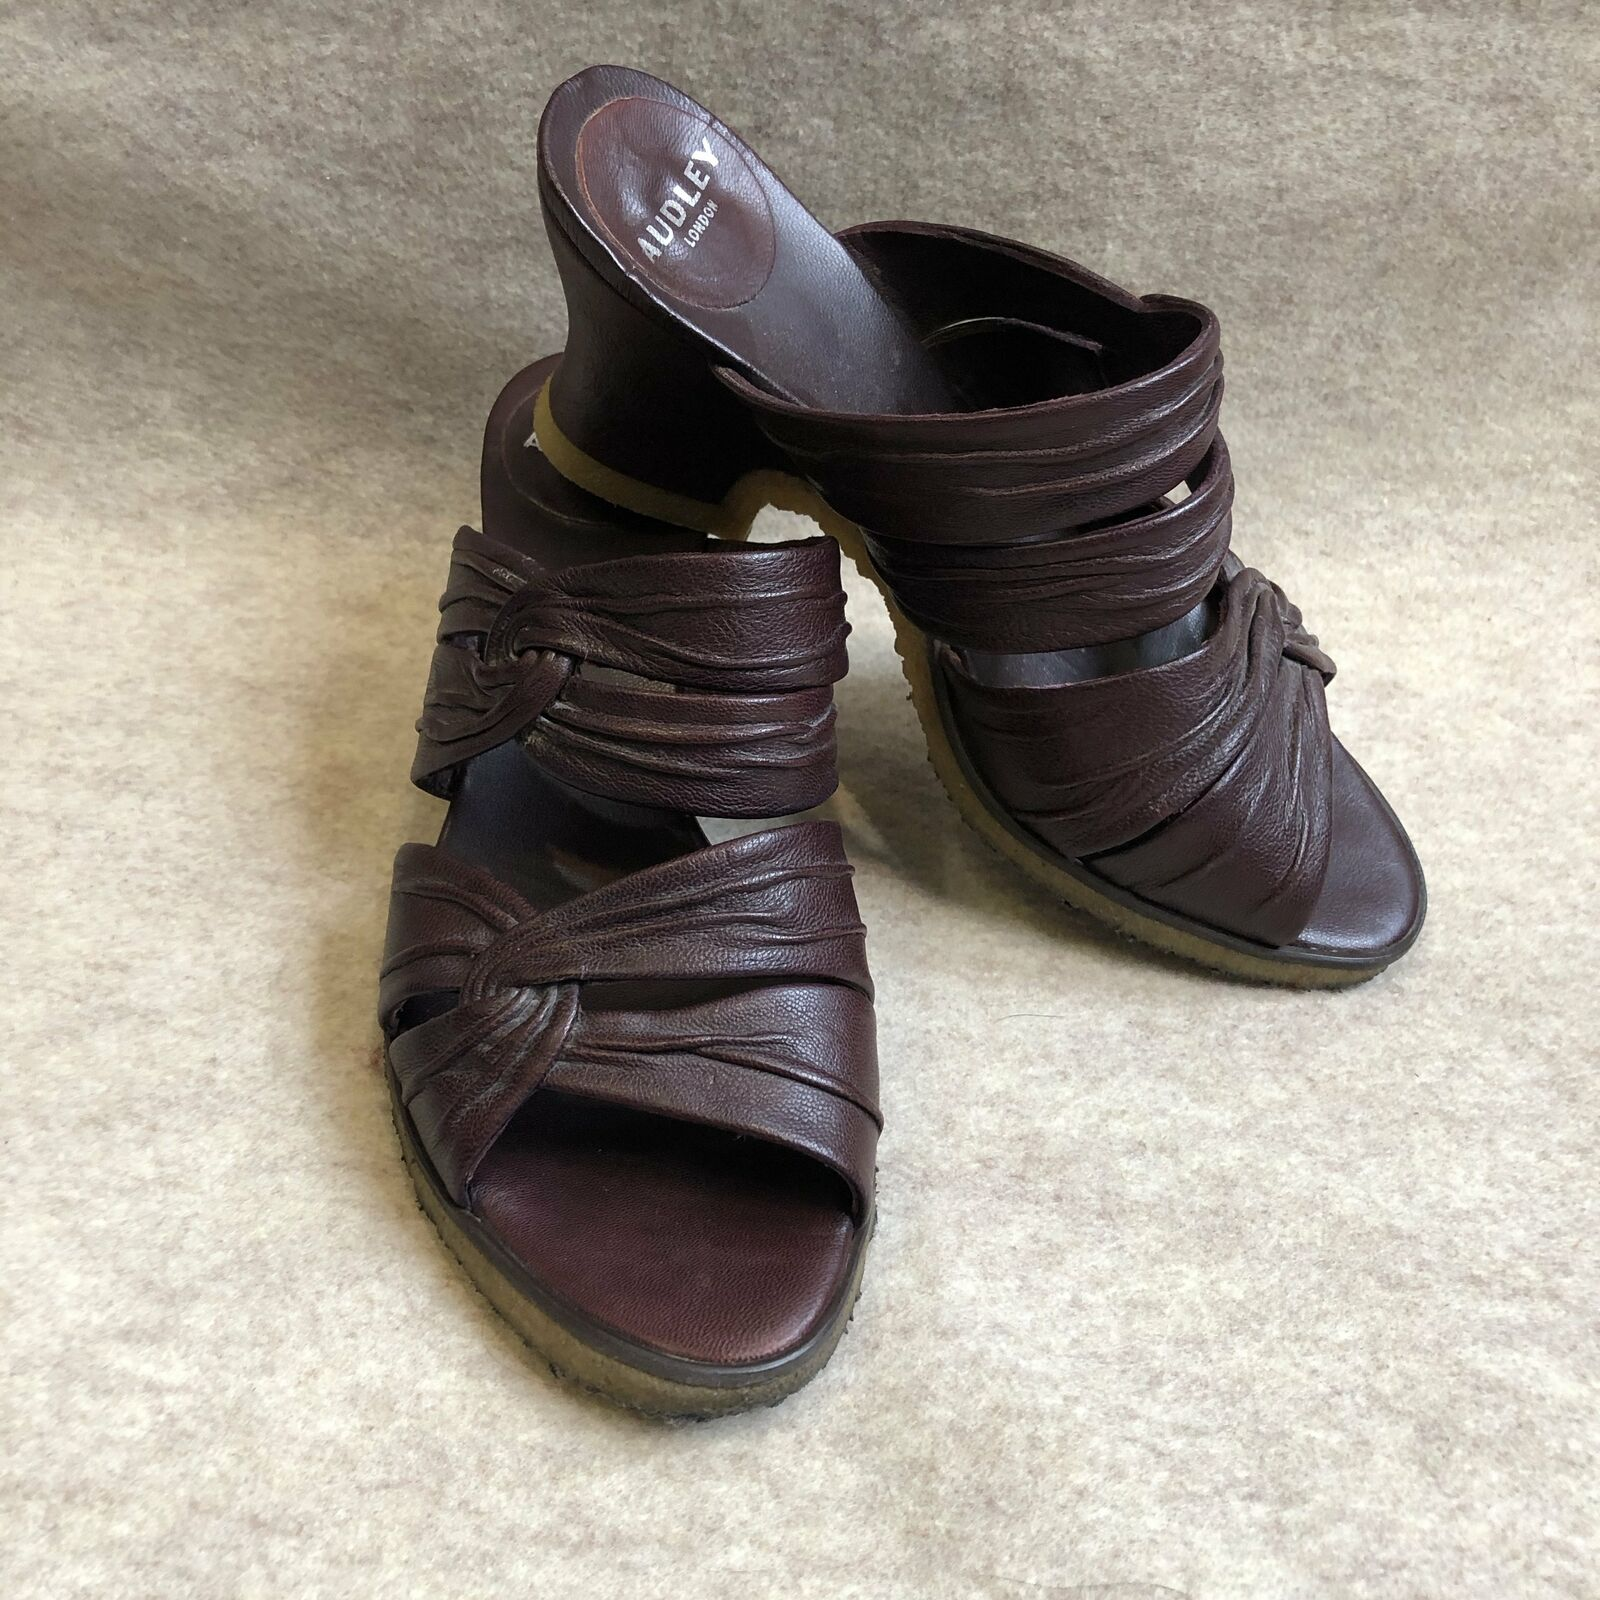 Audley Leather Mules 7-7.5